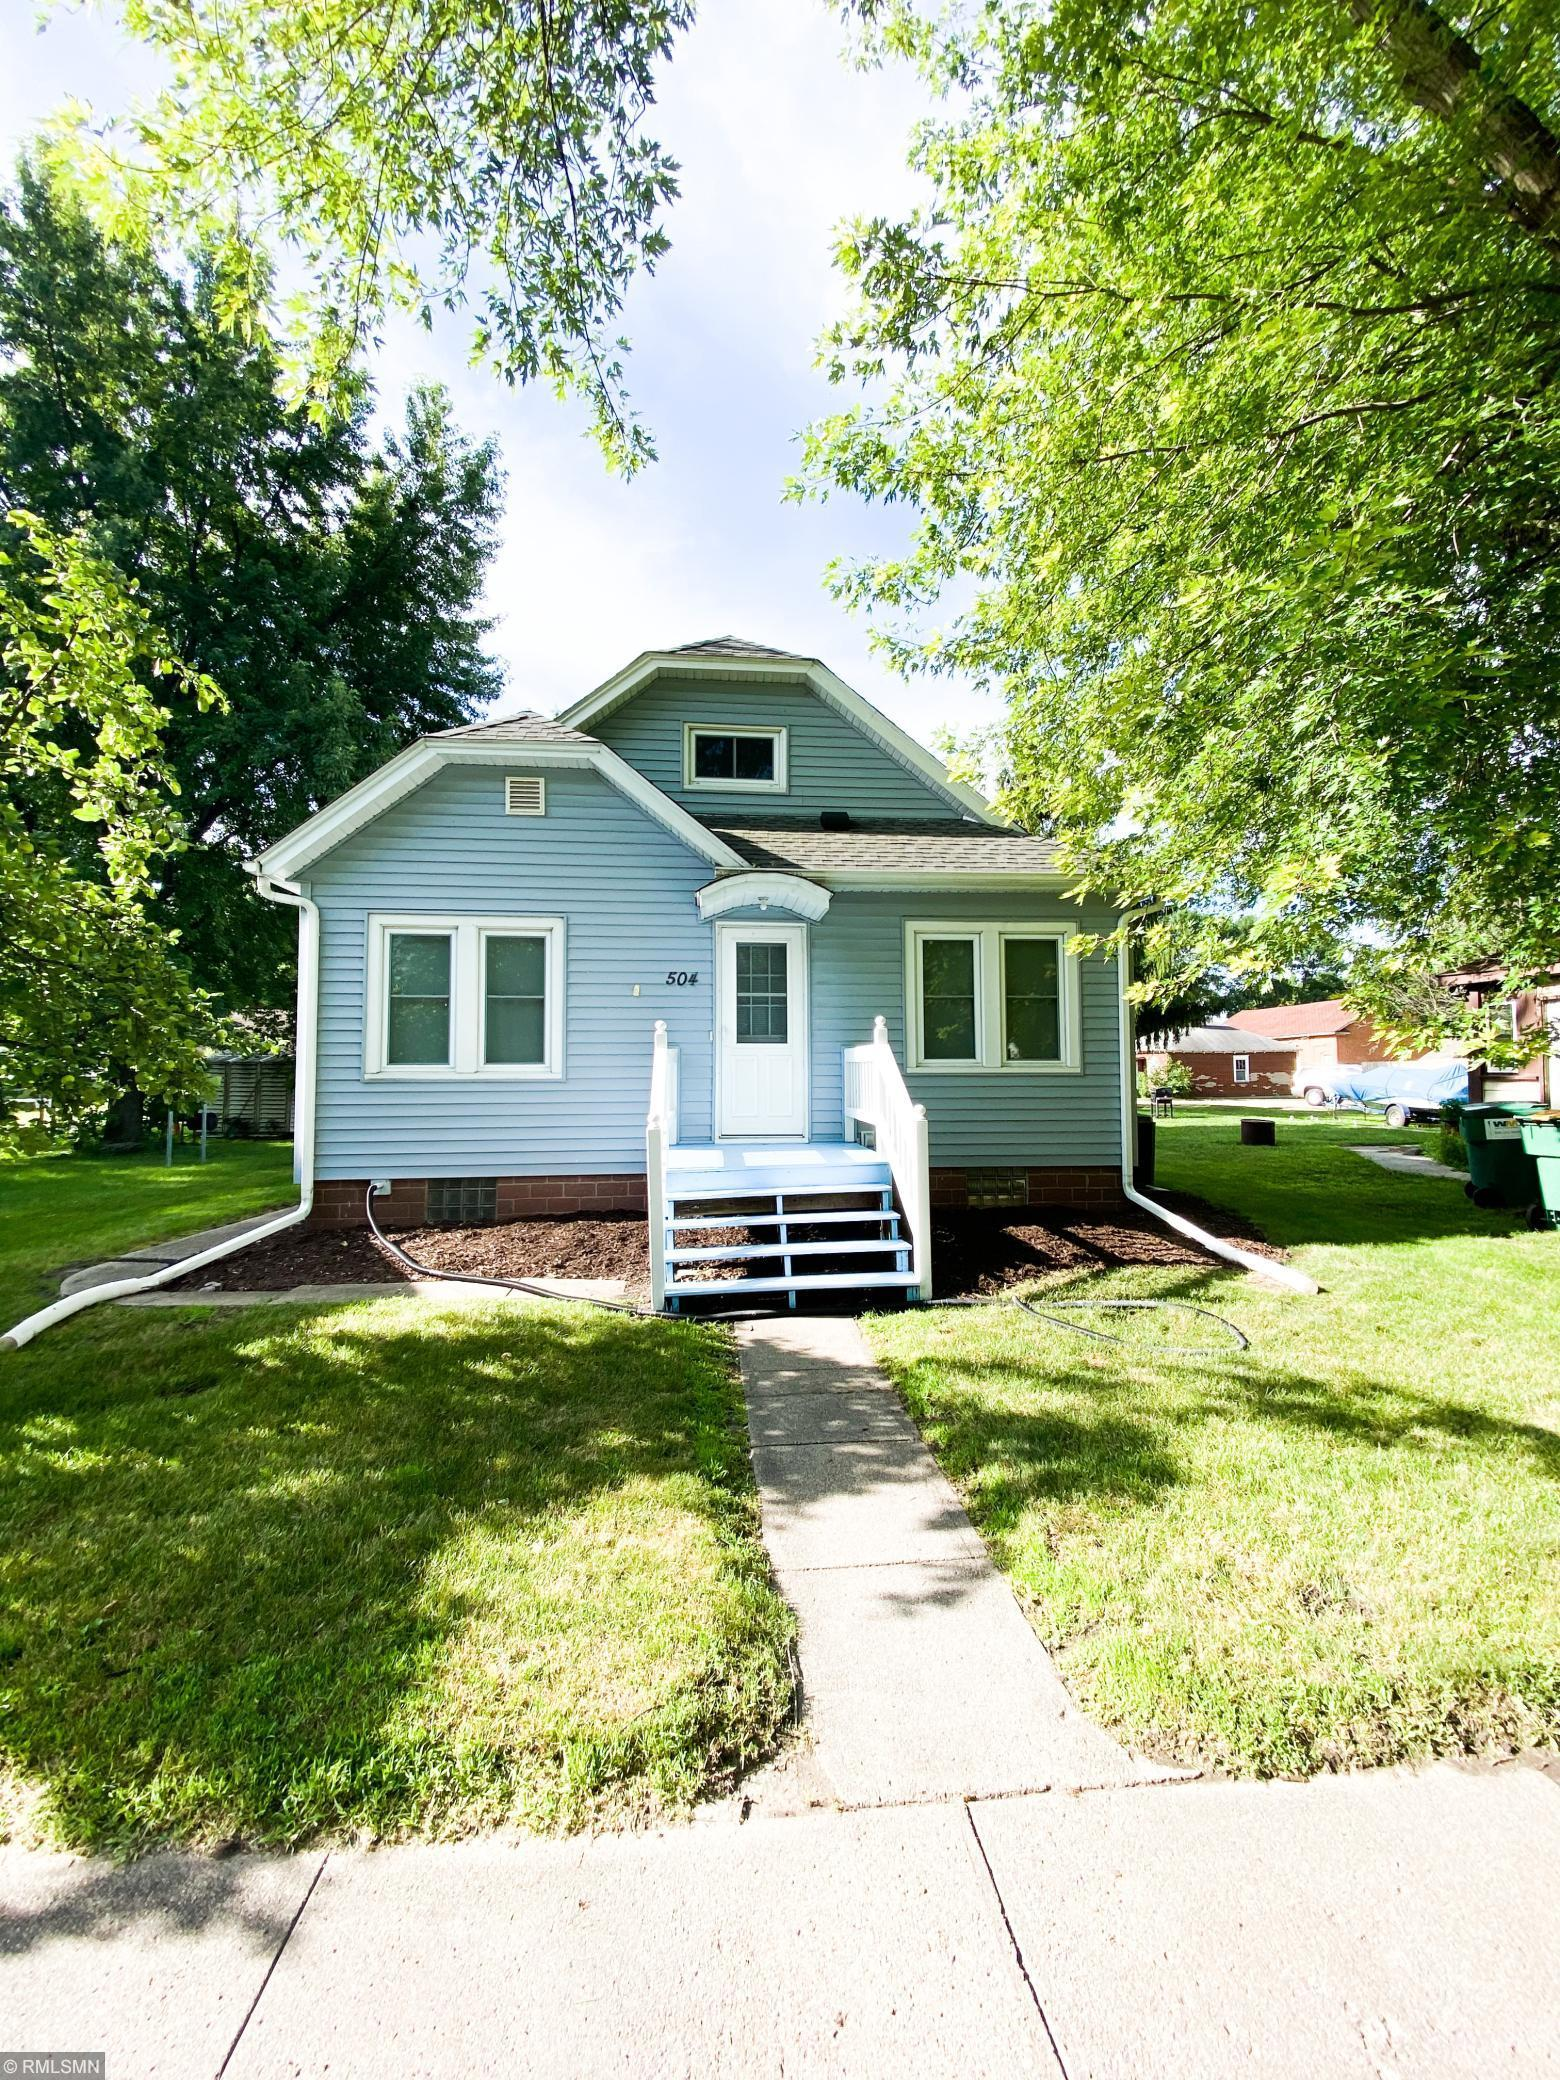 504 W Brooks Street Property Photo - Arlington, MN real estate listing